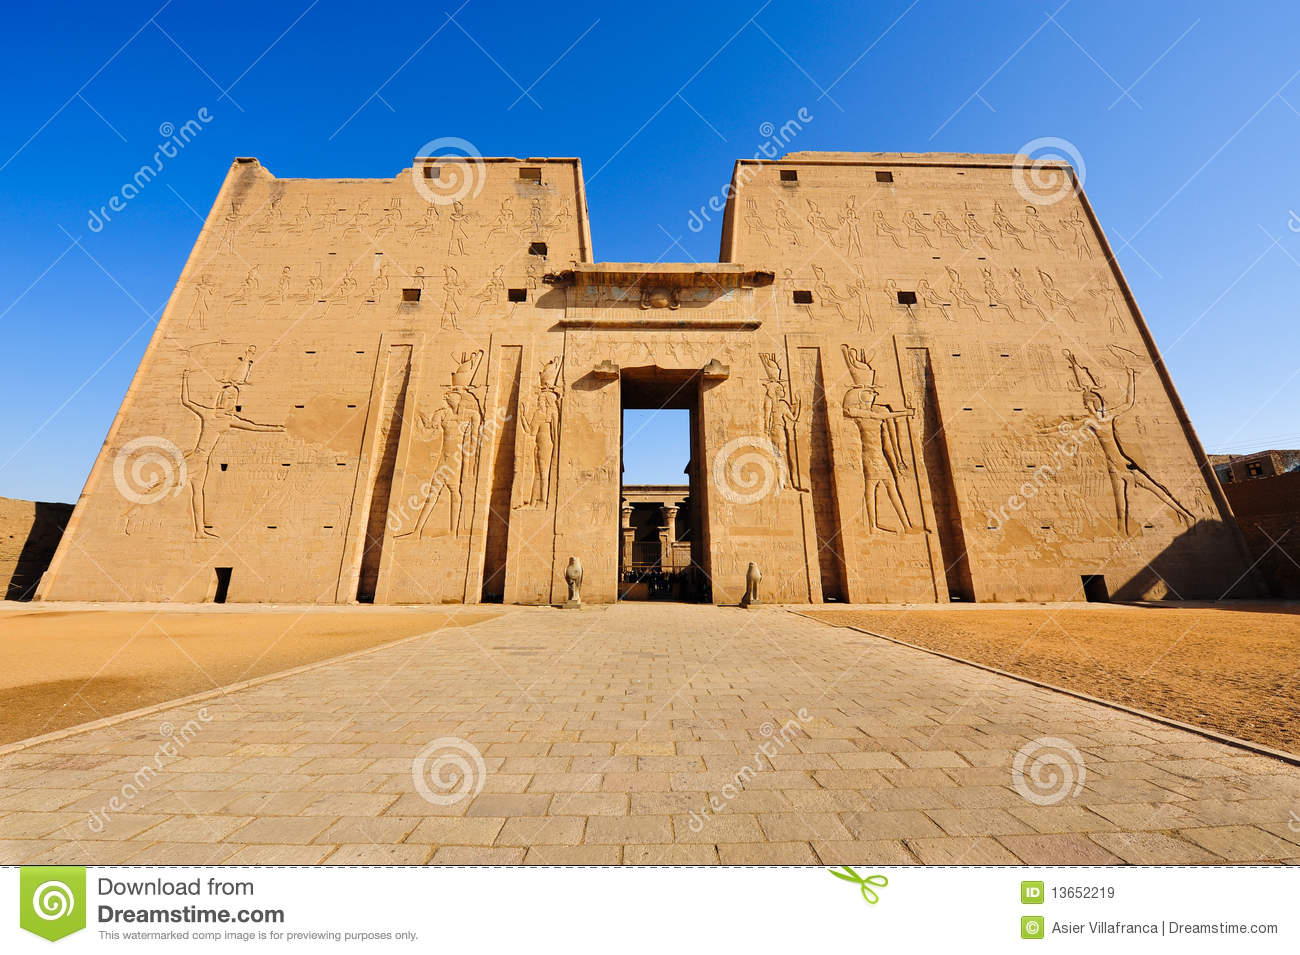 Download Horus Temple In Edfu, Egypt Stock Image - Image of egyptian, horus: 13652219